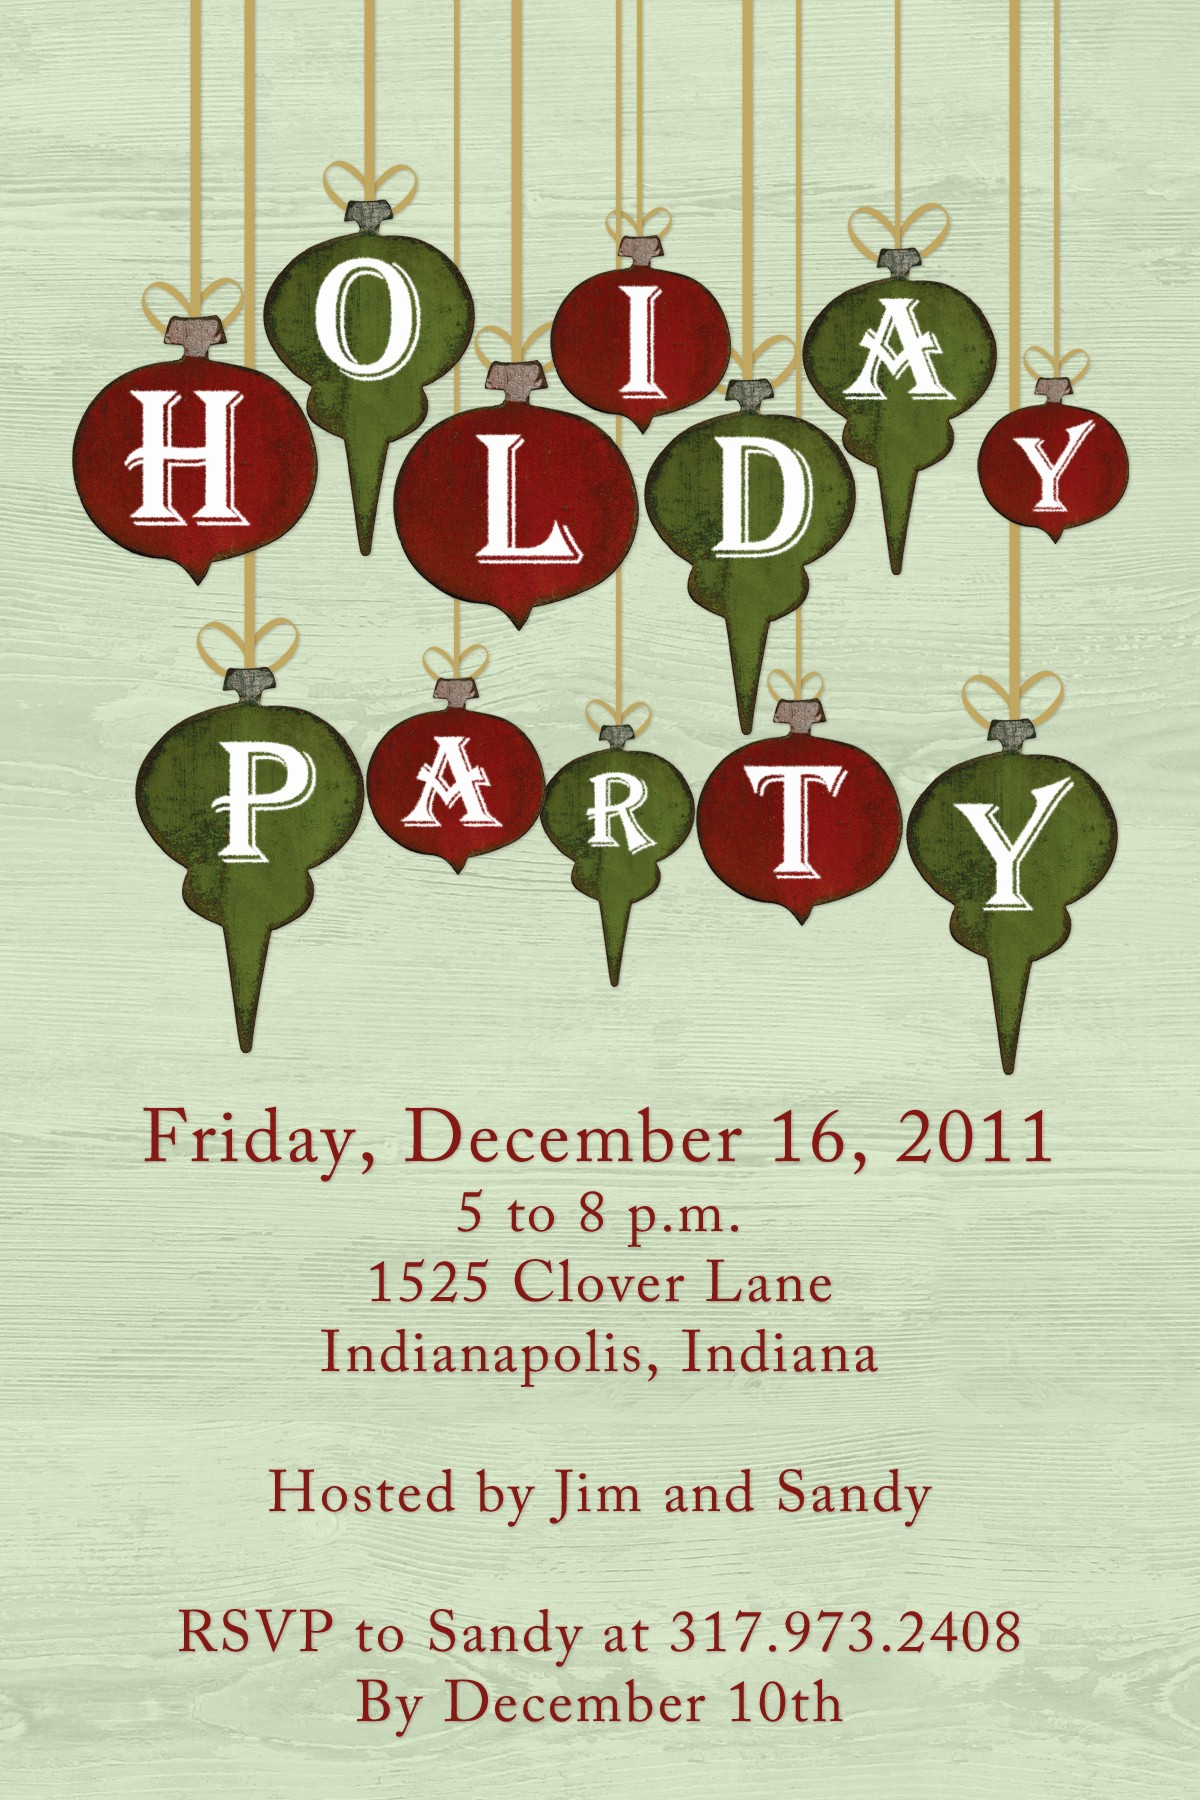 Annual Holiday Party Invitation Template Awesome Annual Holiday Party Invitation Template Fresh Christmas